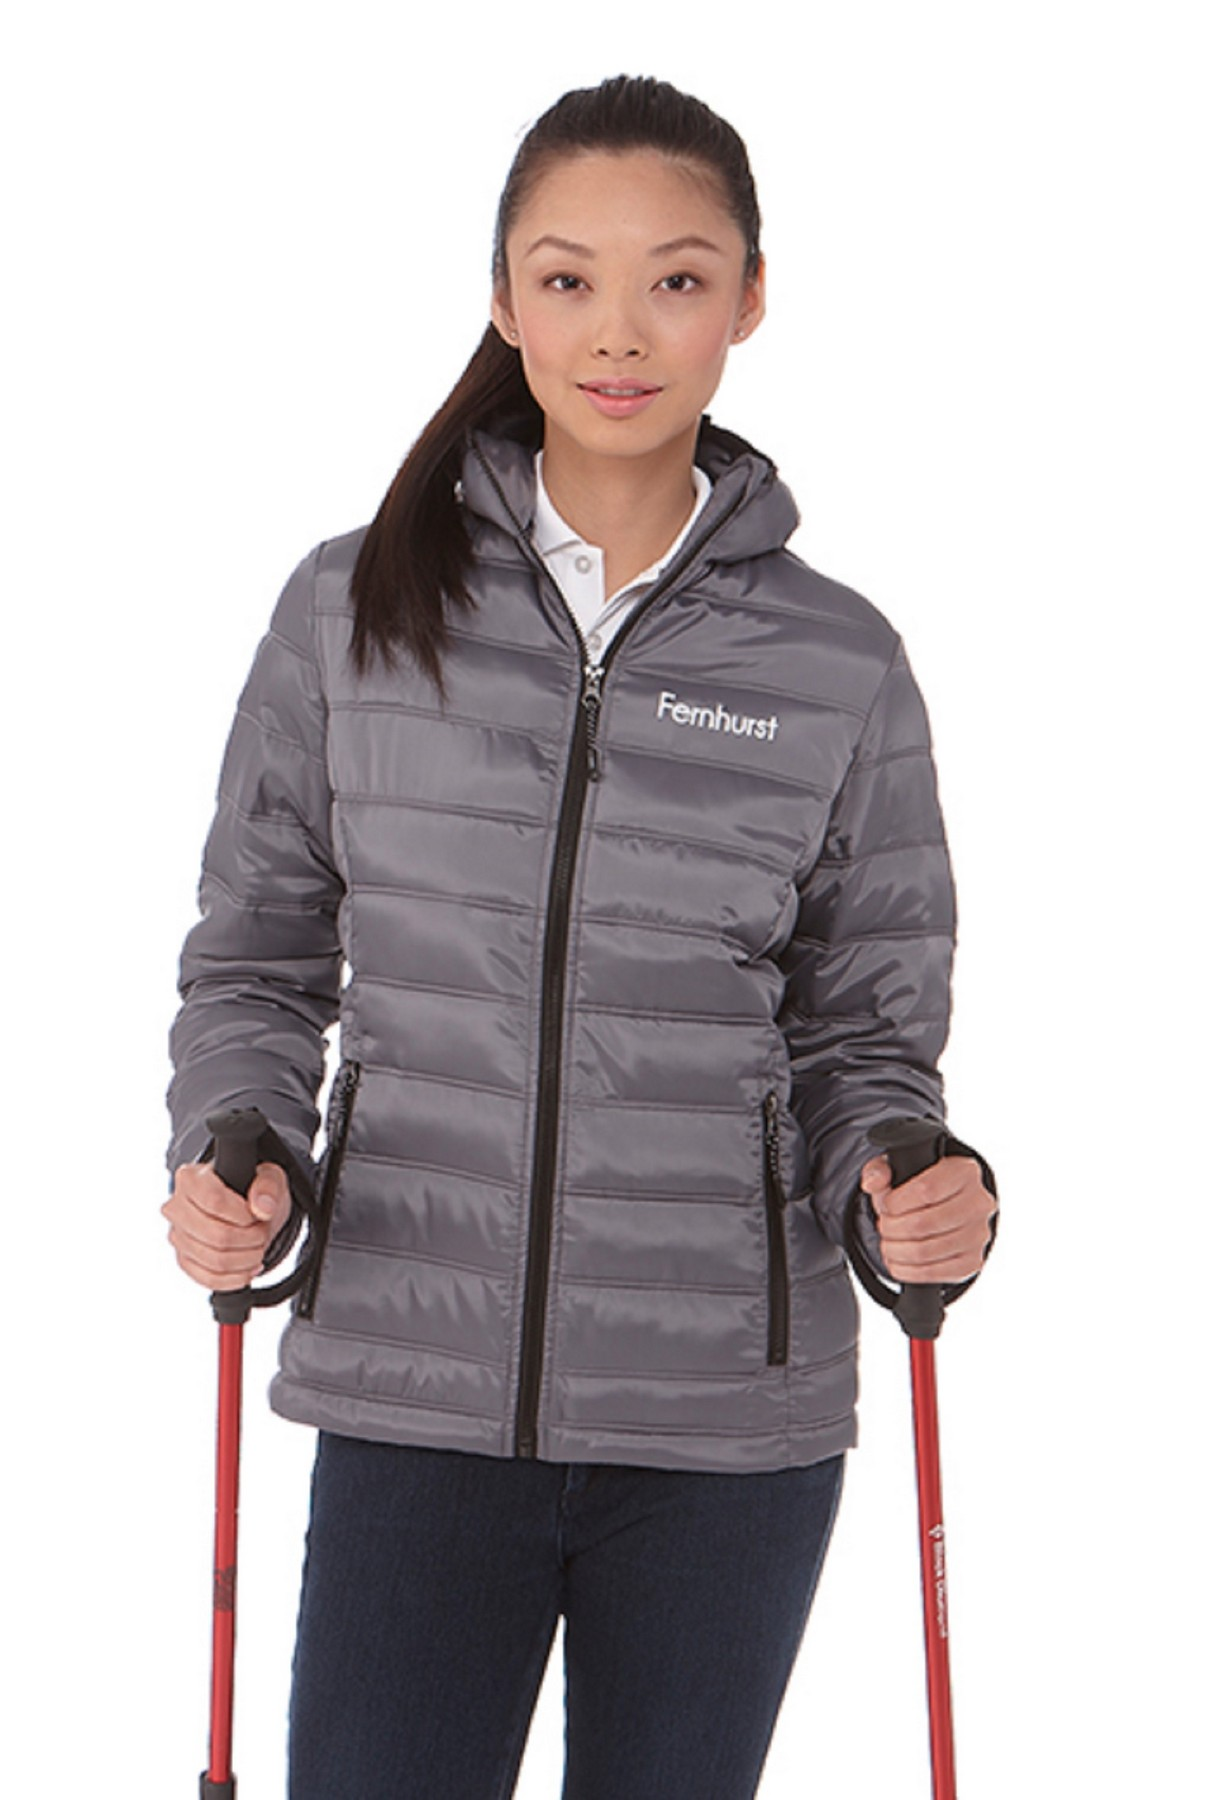 Norquay Women's Insulated Jacket, #99541 - Embroidered